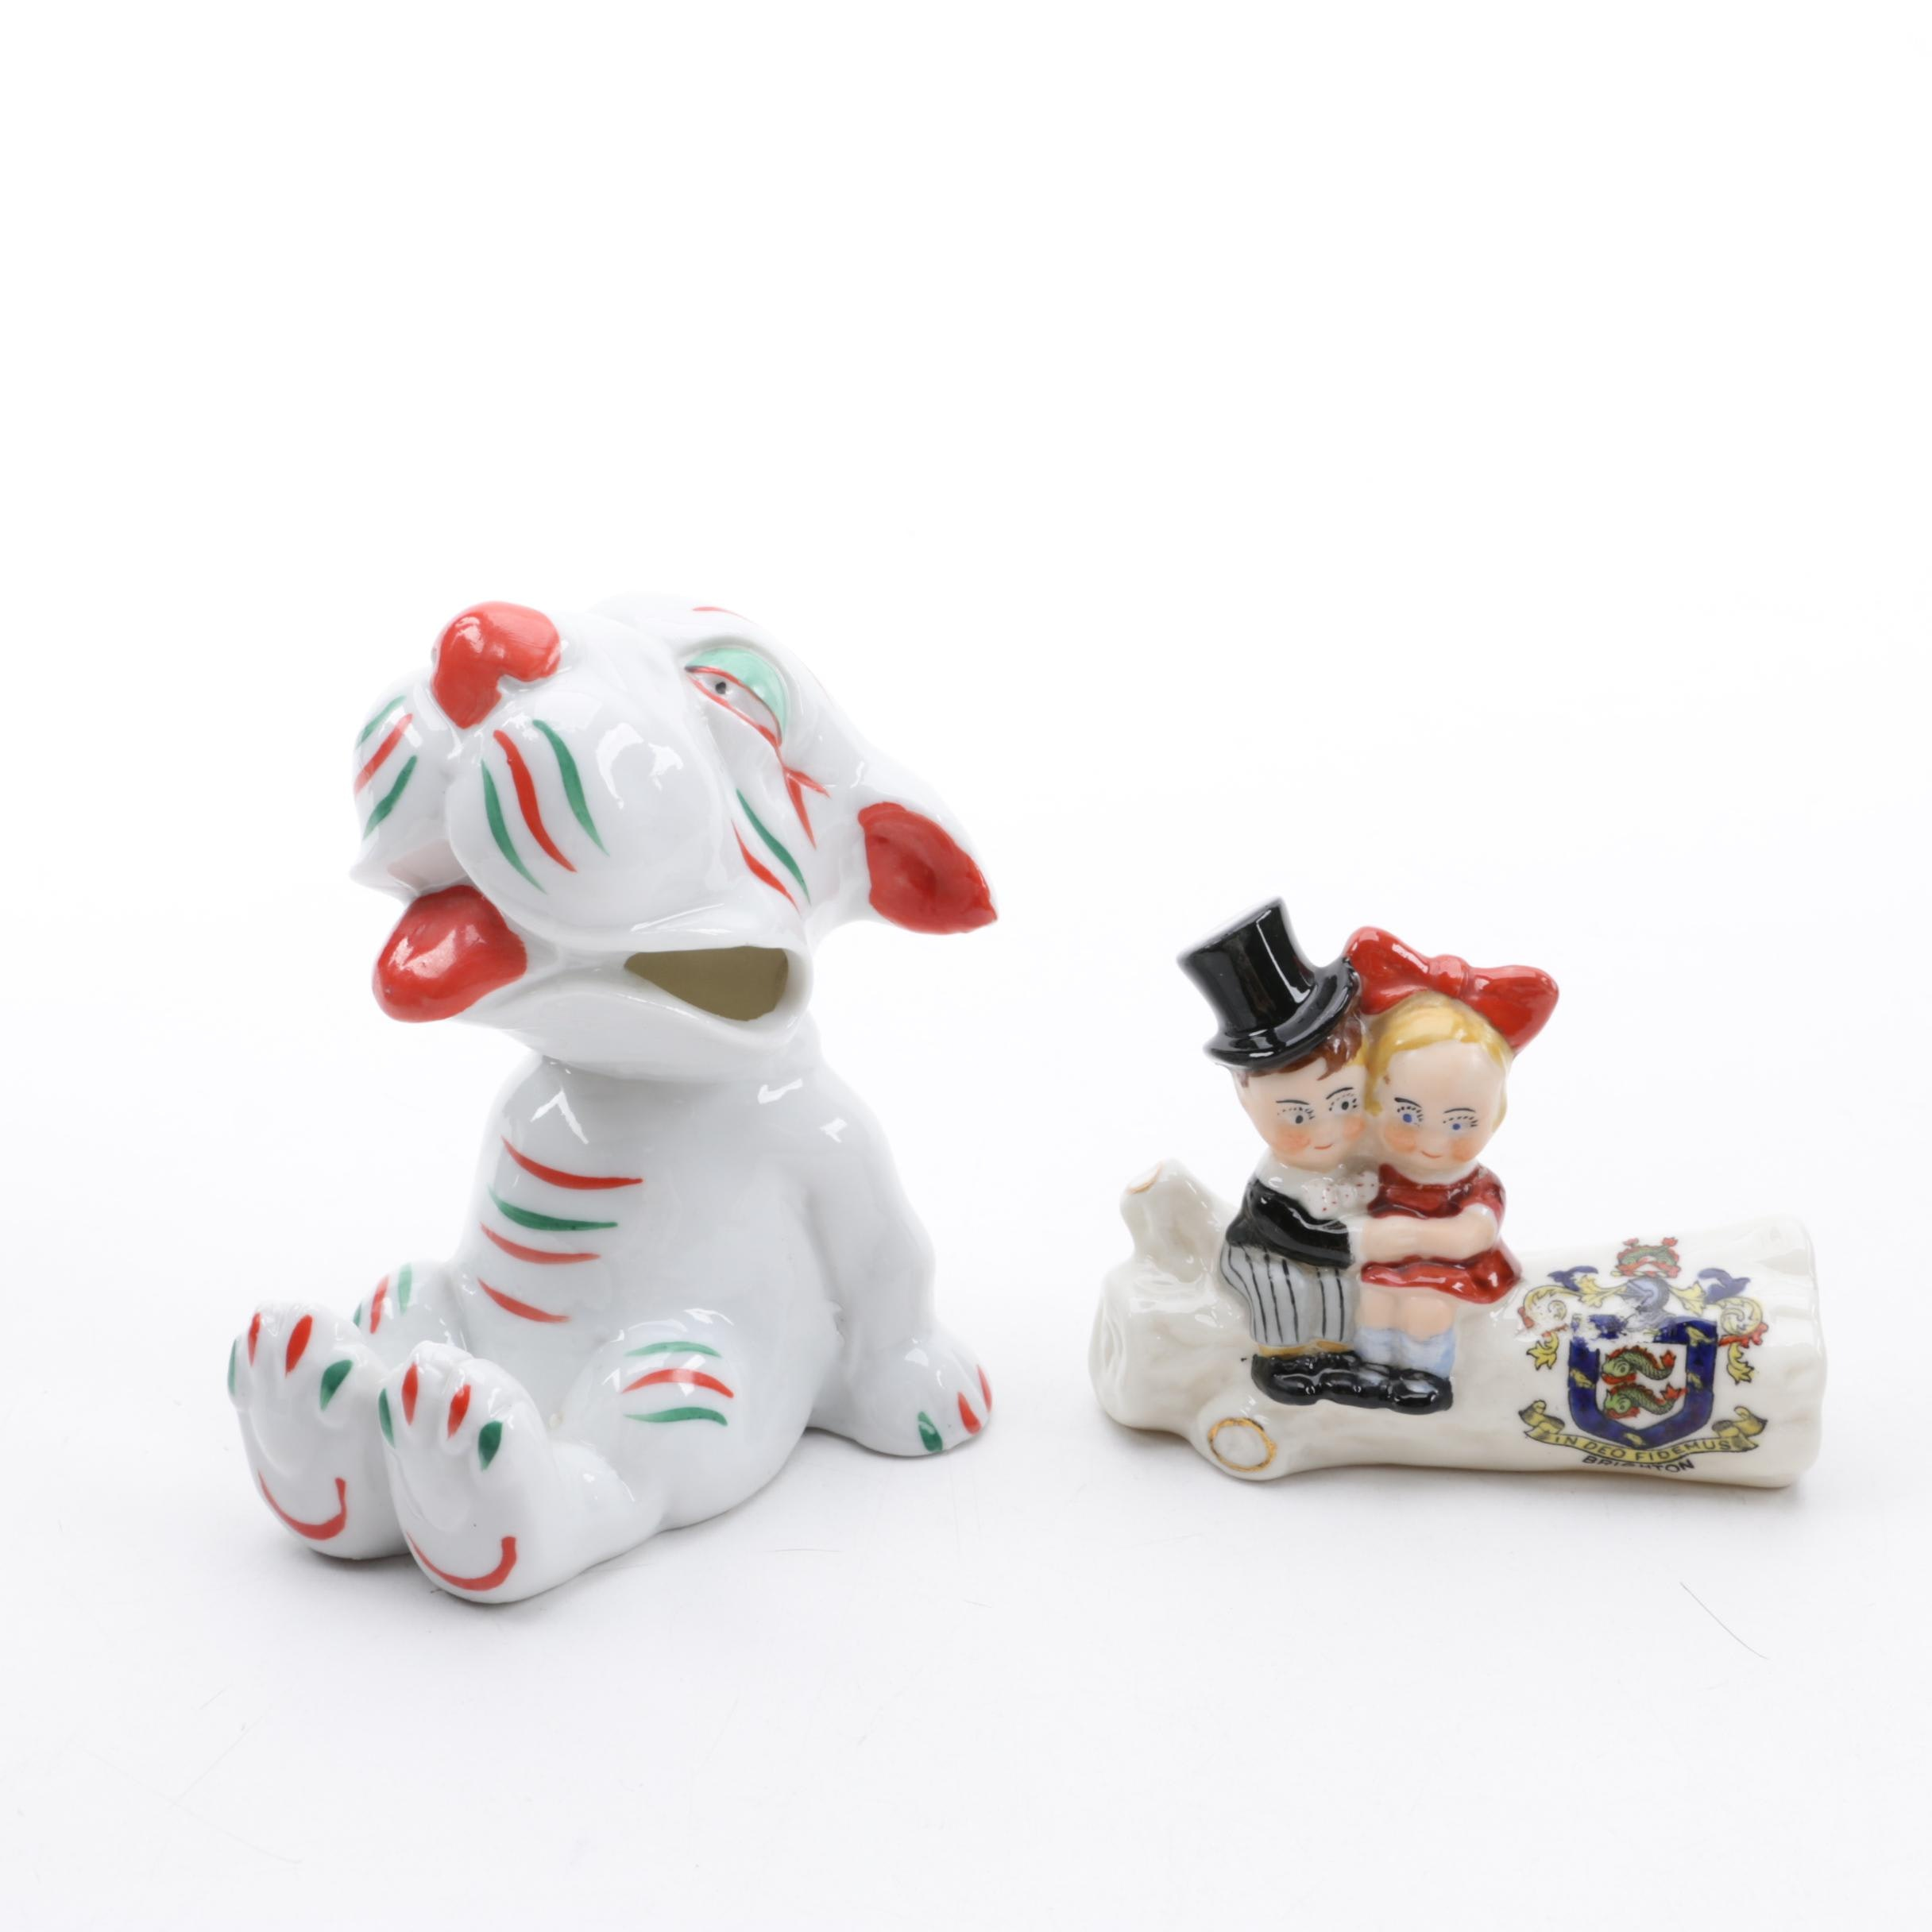 Arcadian Crested China Figurine with German Porcelain Dog Figurine